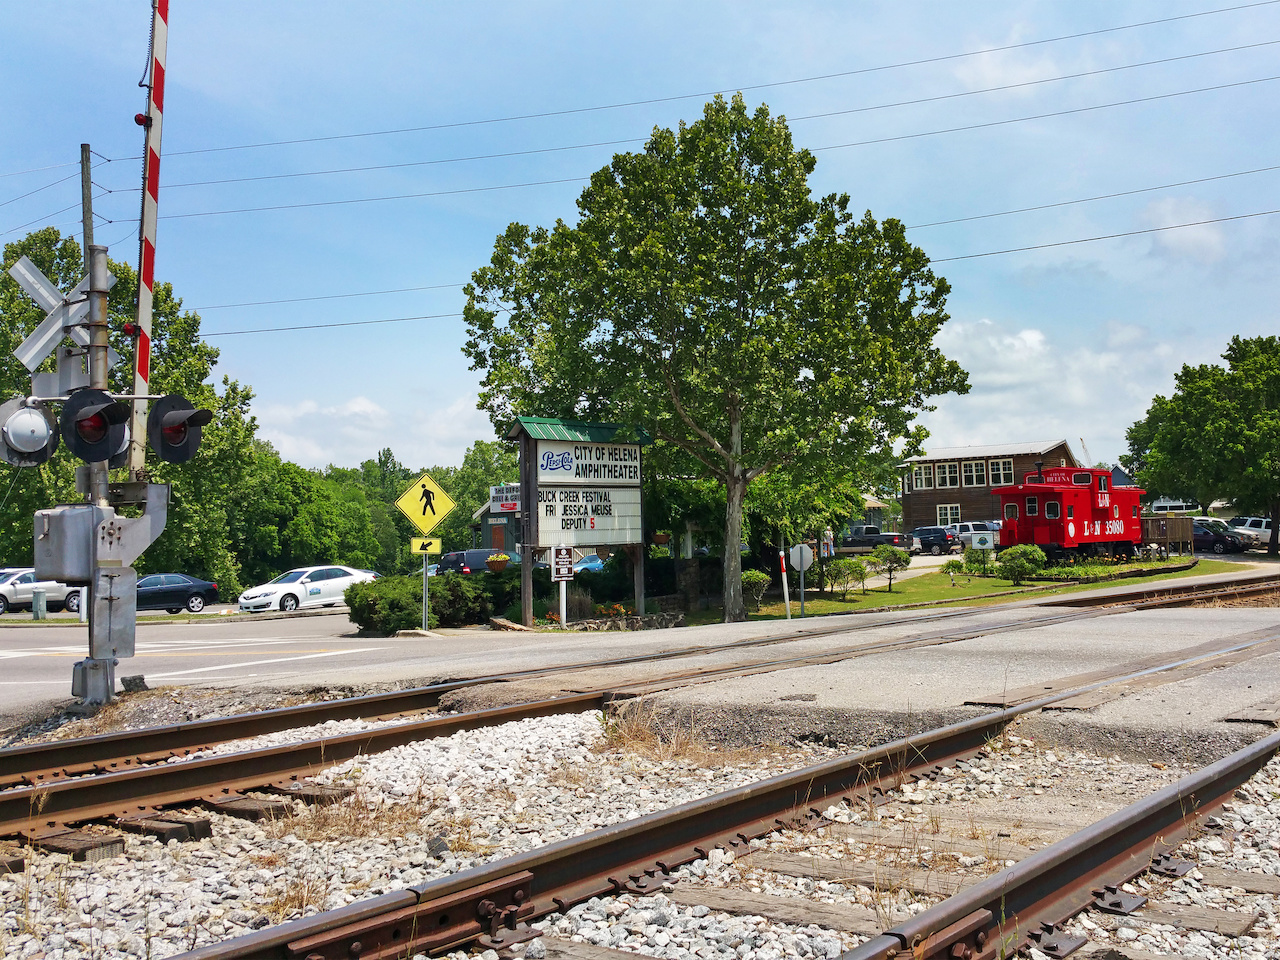 Helena road intersects with the railroad here at the nexus of Old Town Helena.